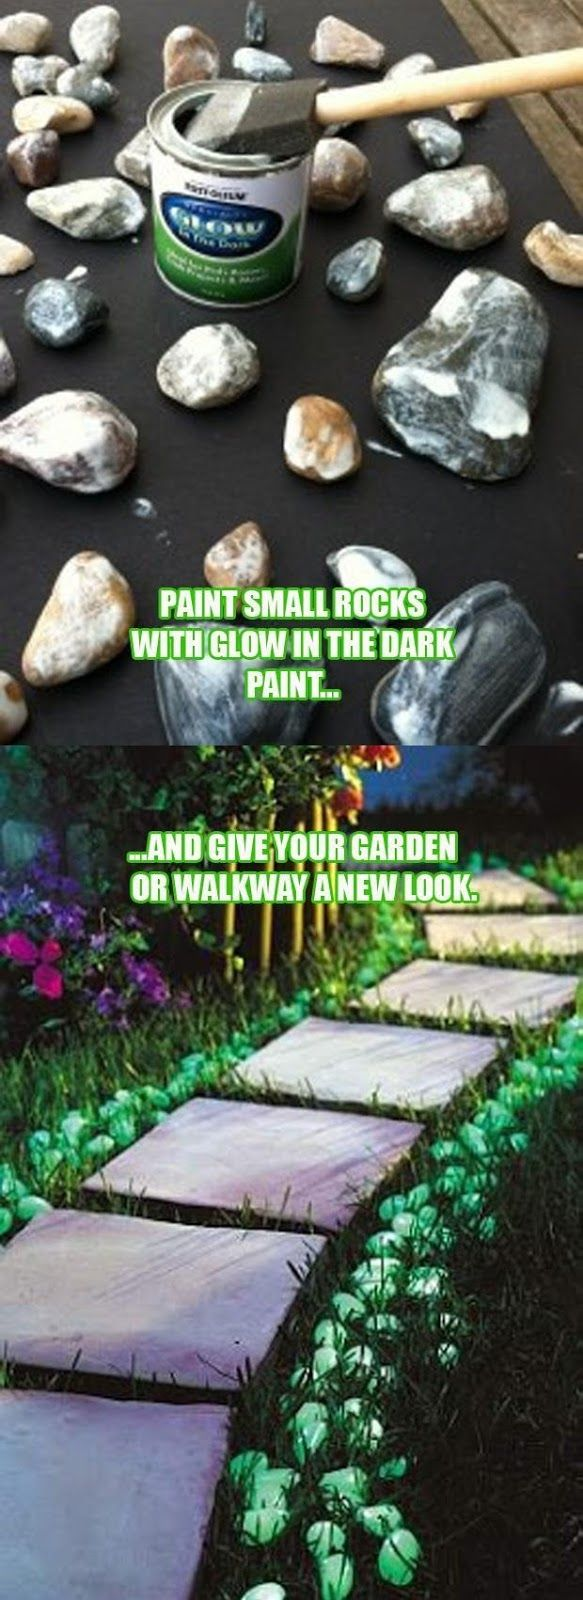 """GLOW ROCKS:  Glow in the dark paint rules!!  This would be great for campsites or an """"Easter egg"""" hunt for kids at night."""